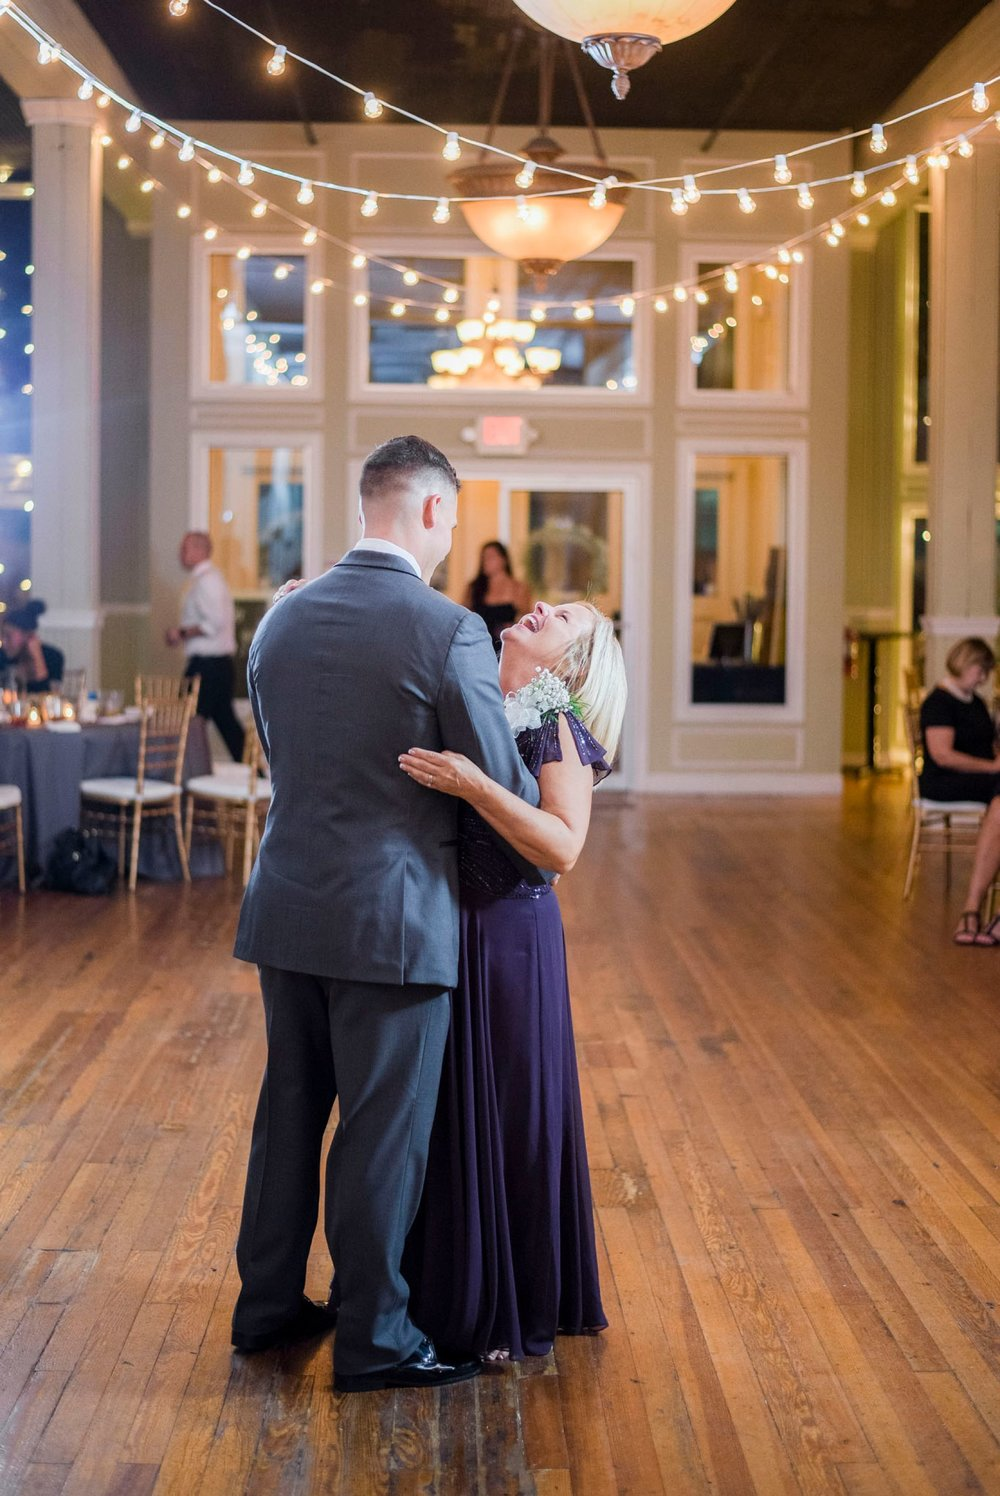 Trescaon8th_DowntownLynchburg_Virginiaweddingphotographer 95.jpg